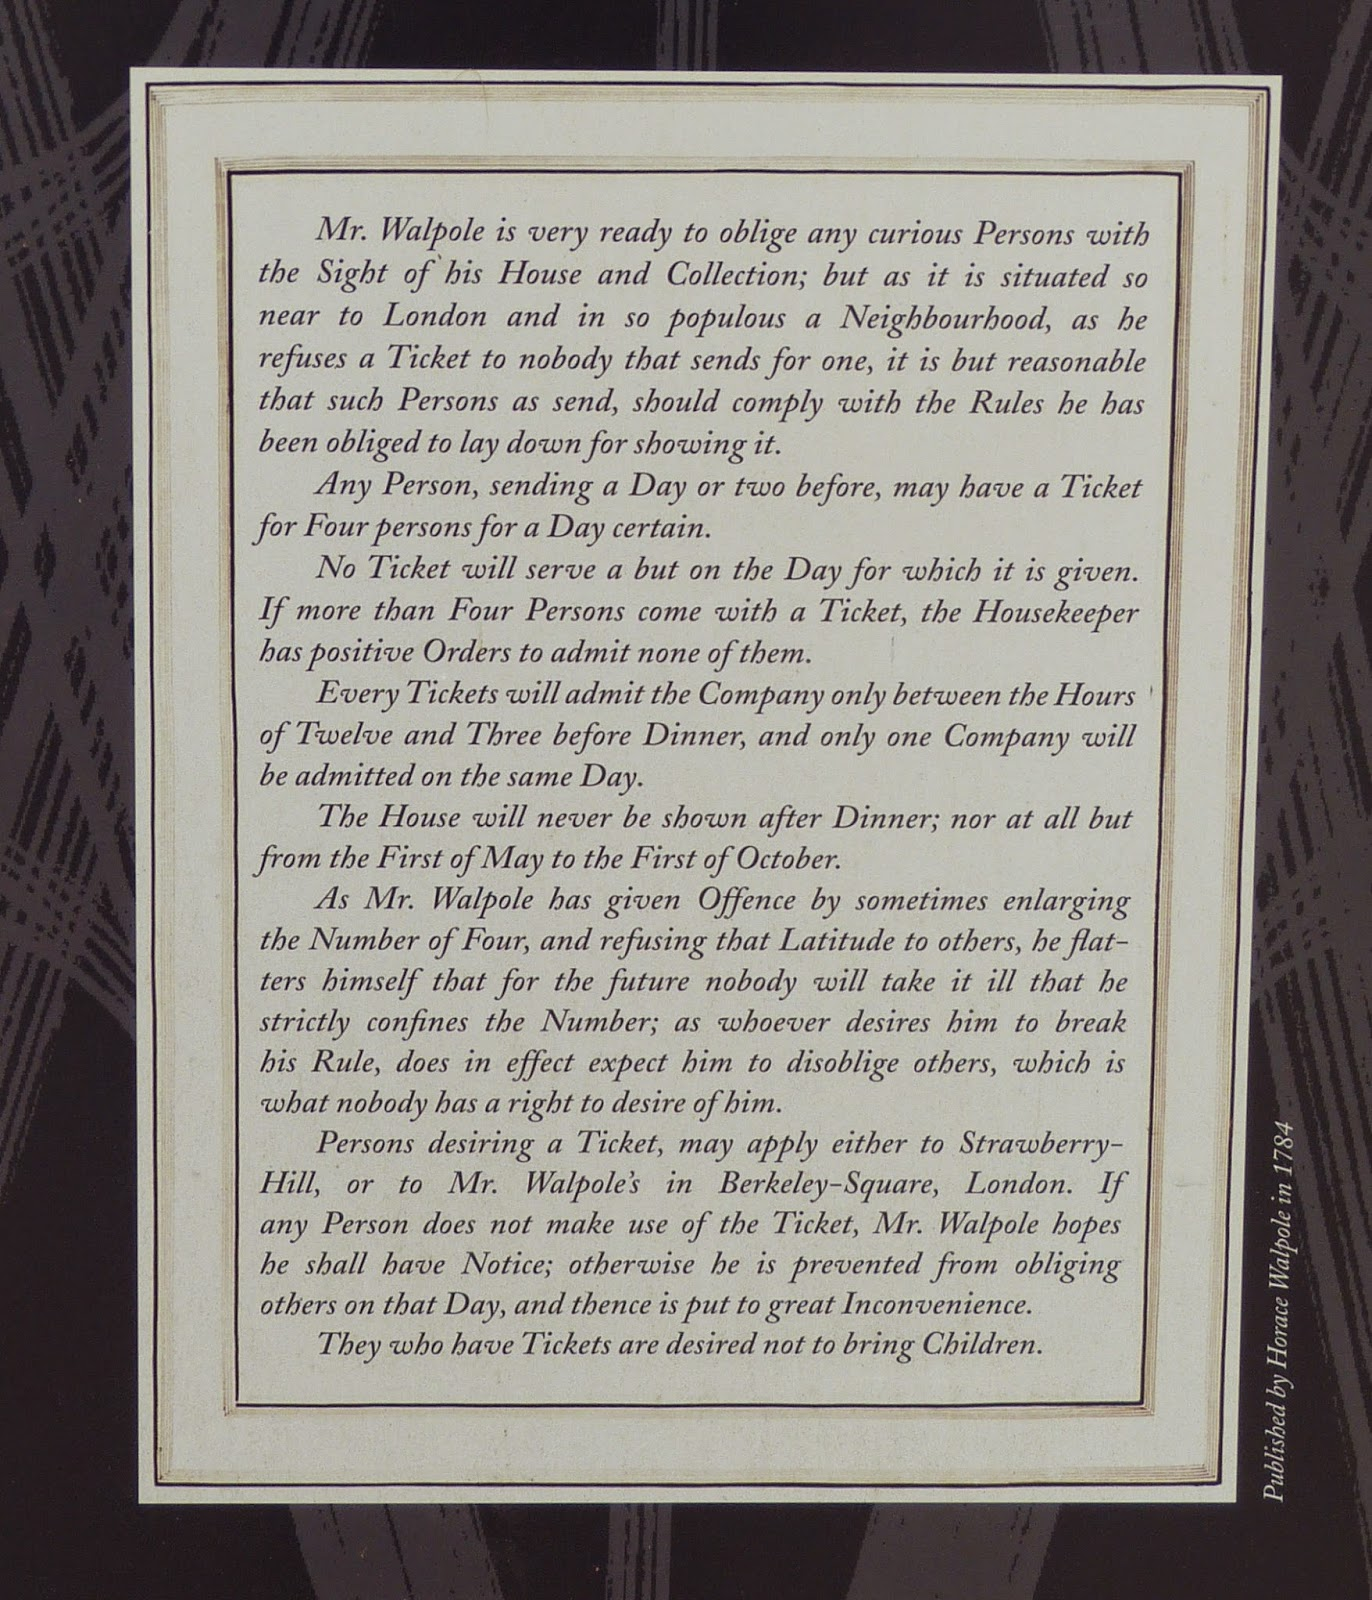 Horace Walpole's rules for viewing Strawberry Hill